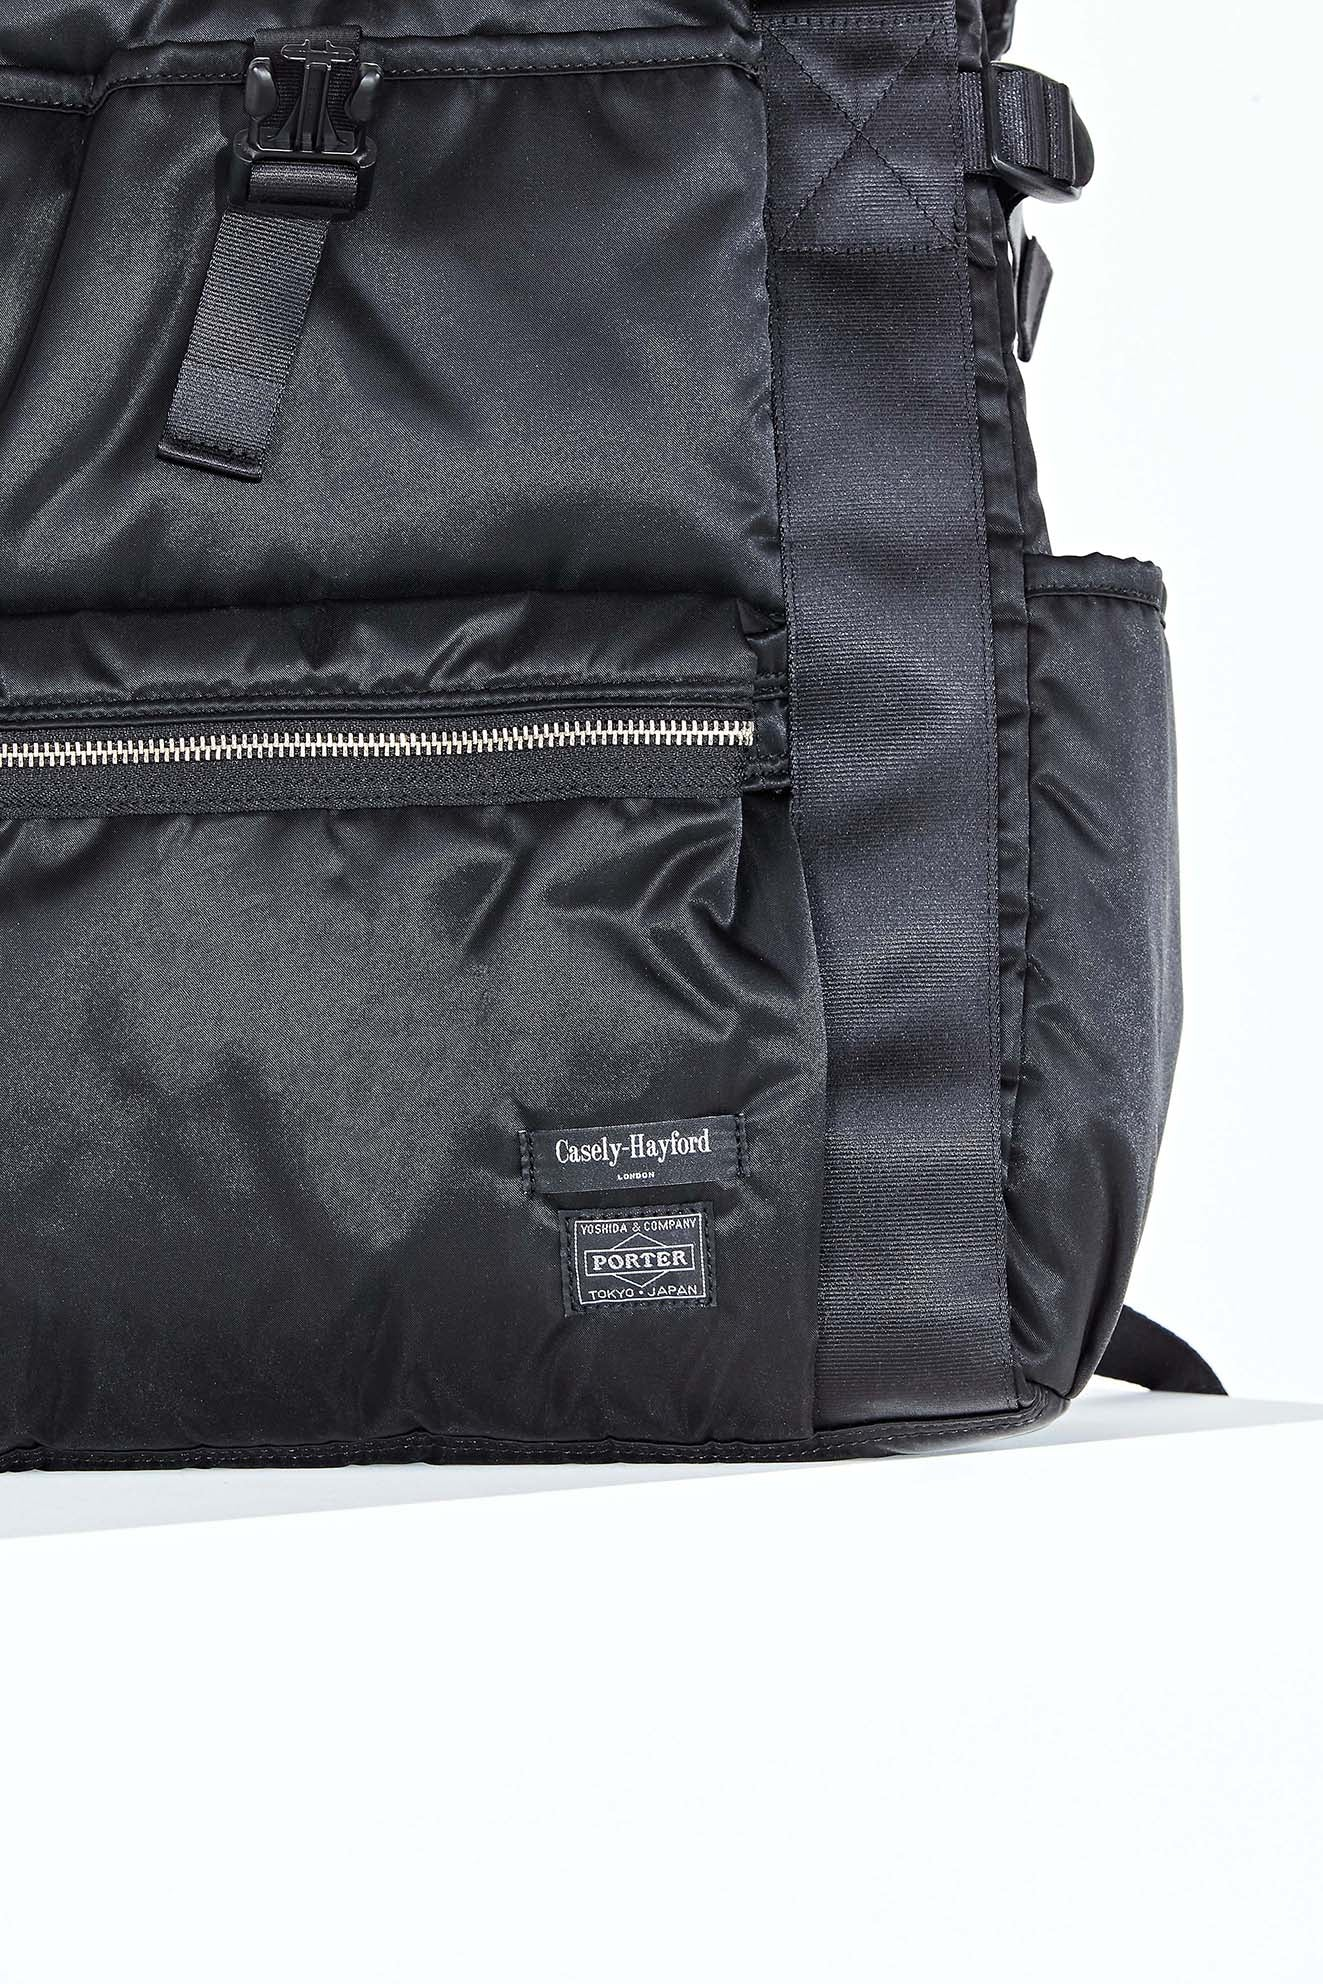 UNION RUCK SACK